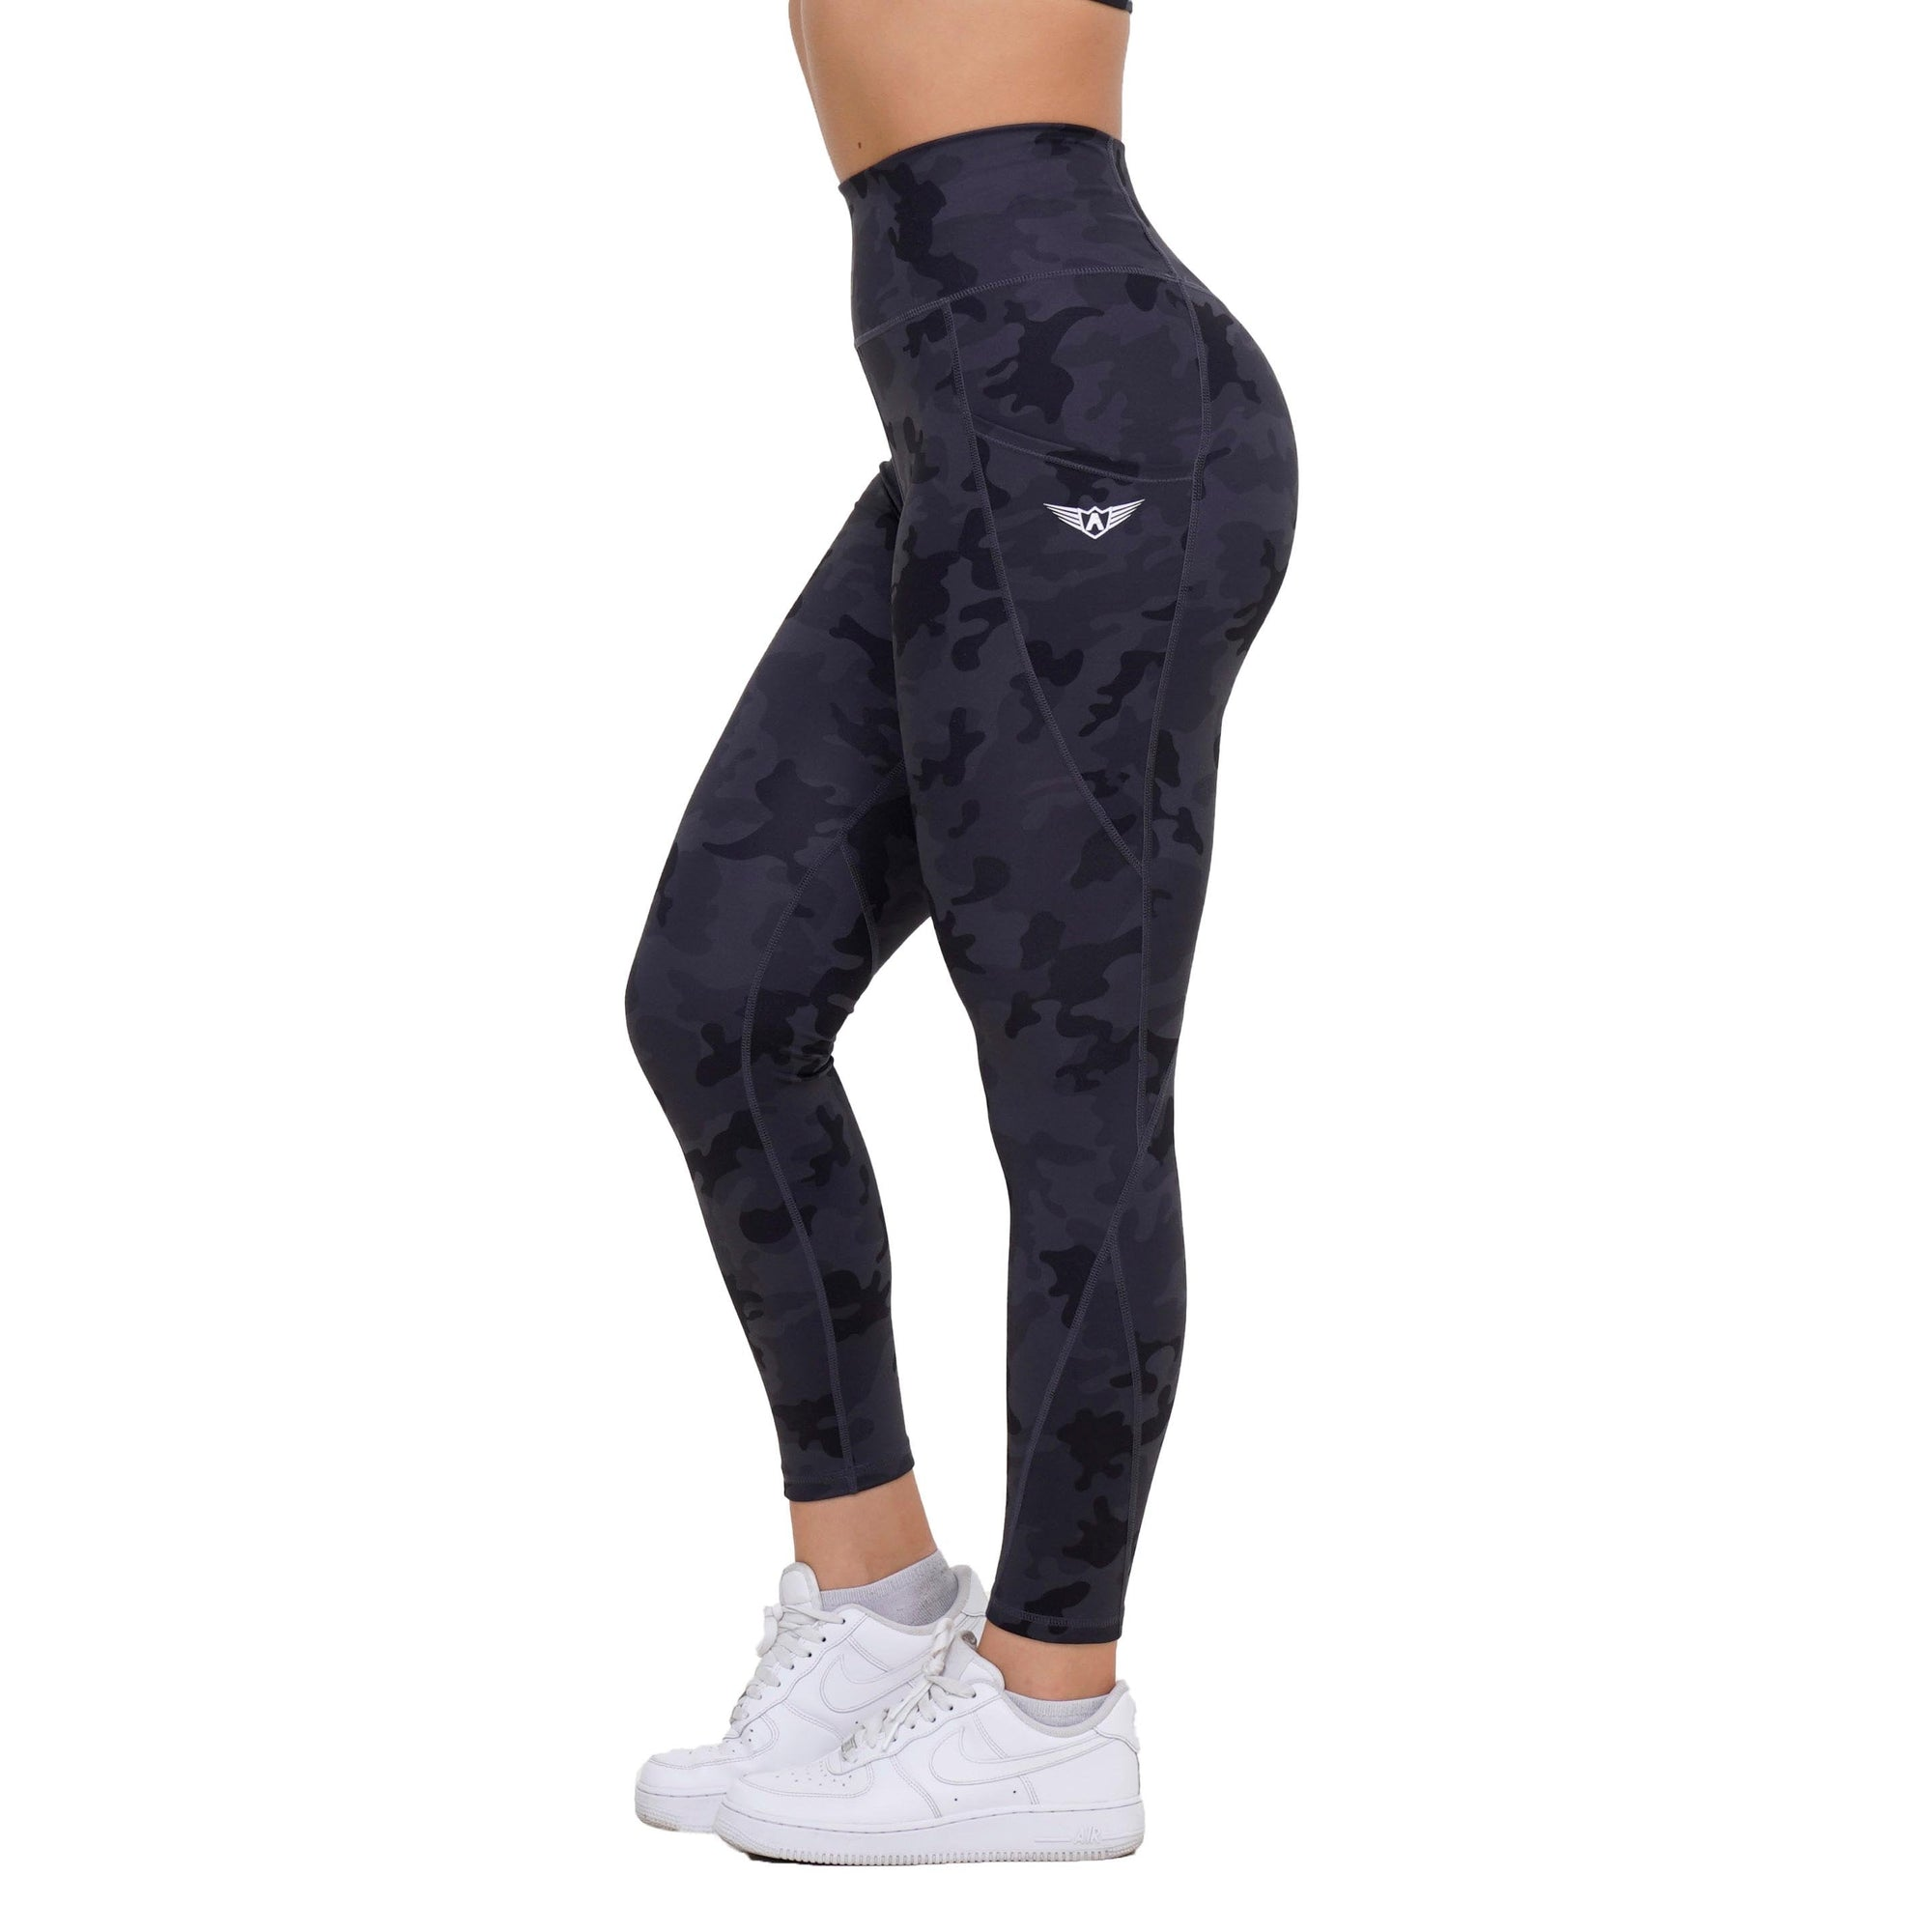 DARK DIAMOND CAMOUFLAGE HIGH WAIST LEGGINGS